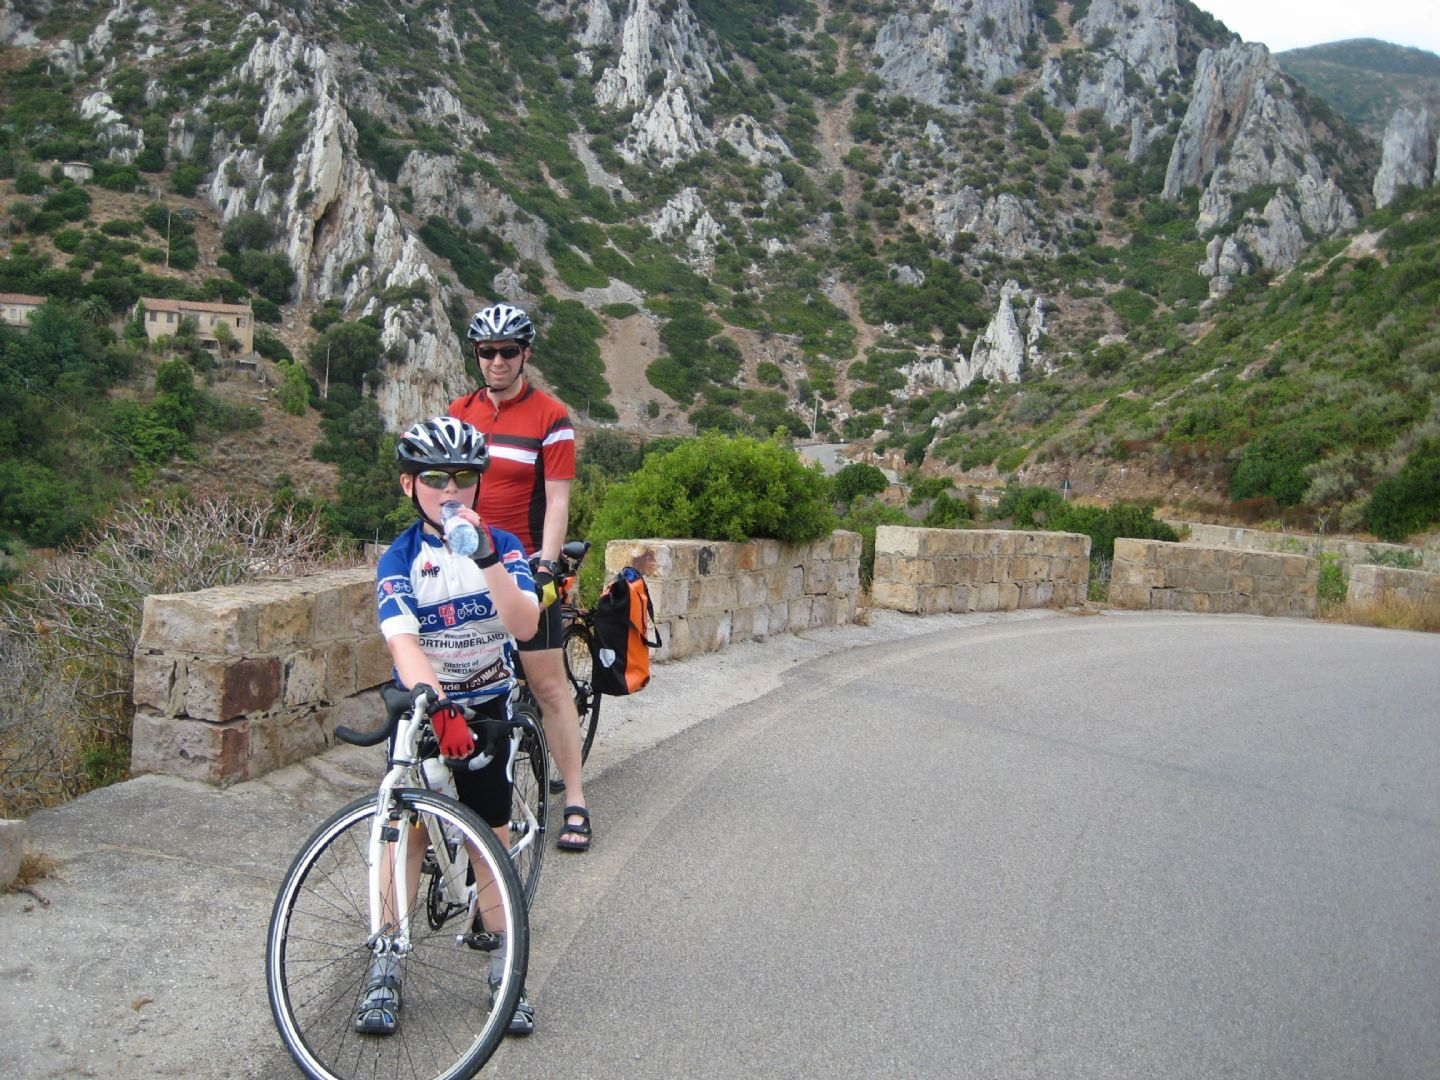 _Customer.81566.13579.jpg - Italy - Sardinia - Family Flavours - Guided Family Cycling Holiday - Italia Leisure and Family Cycling